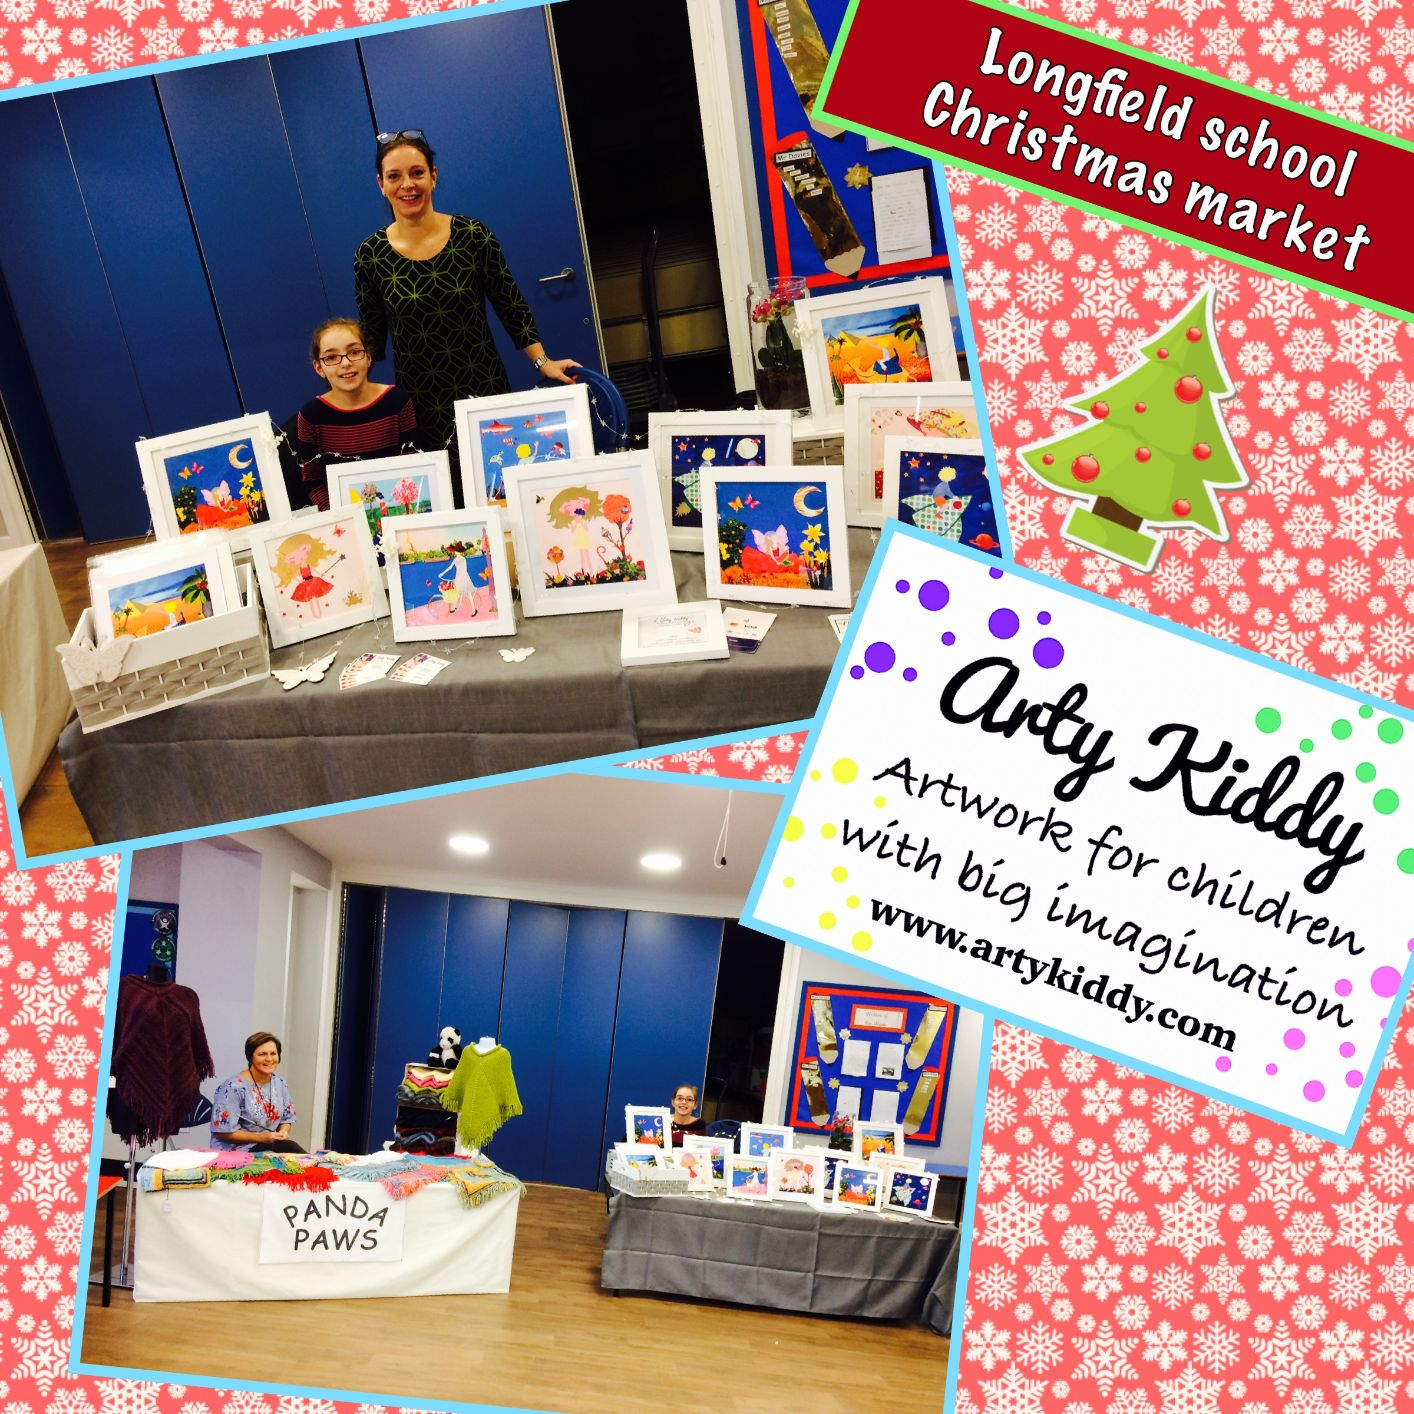 Longfields Primary School Christmas market, Bicester